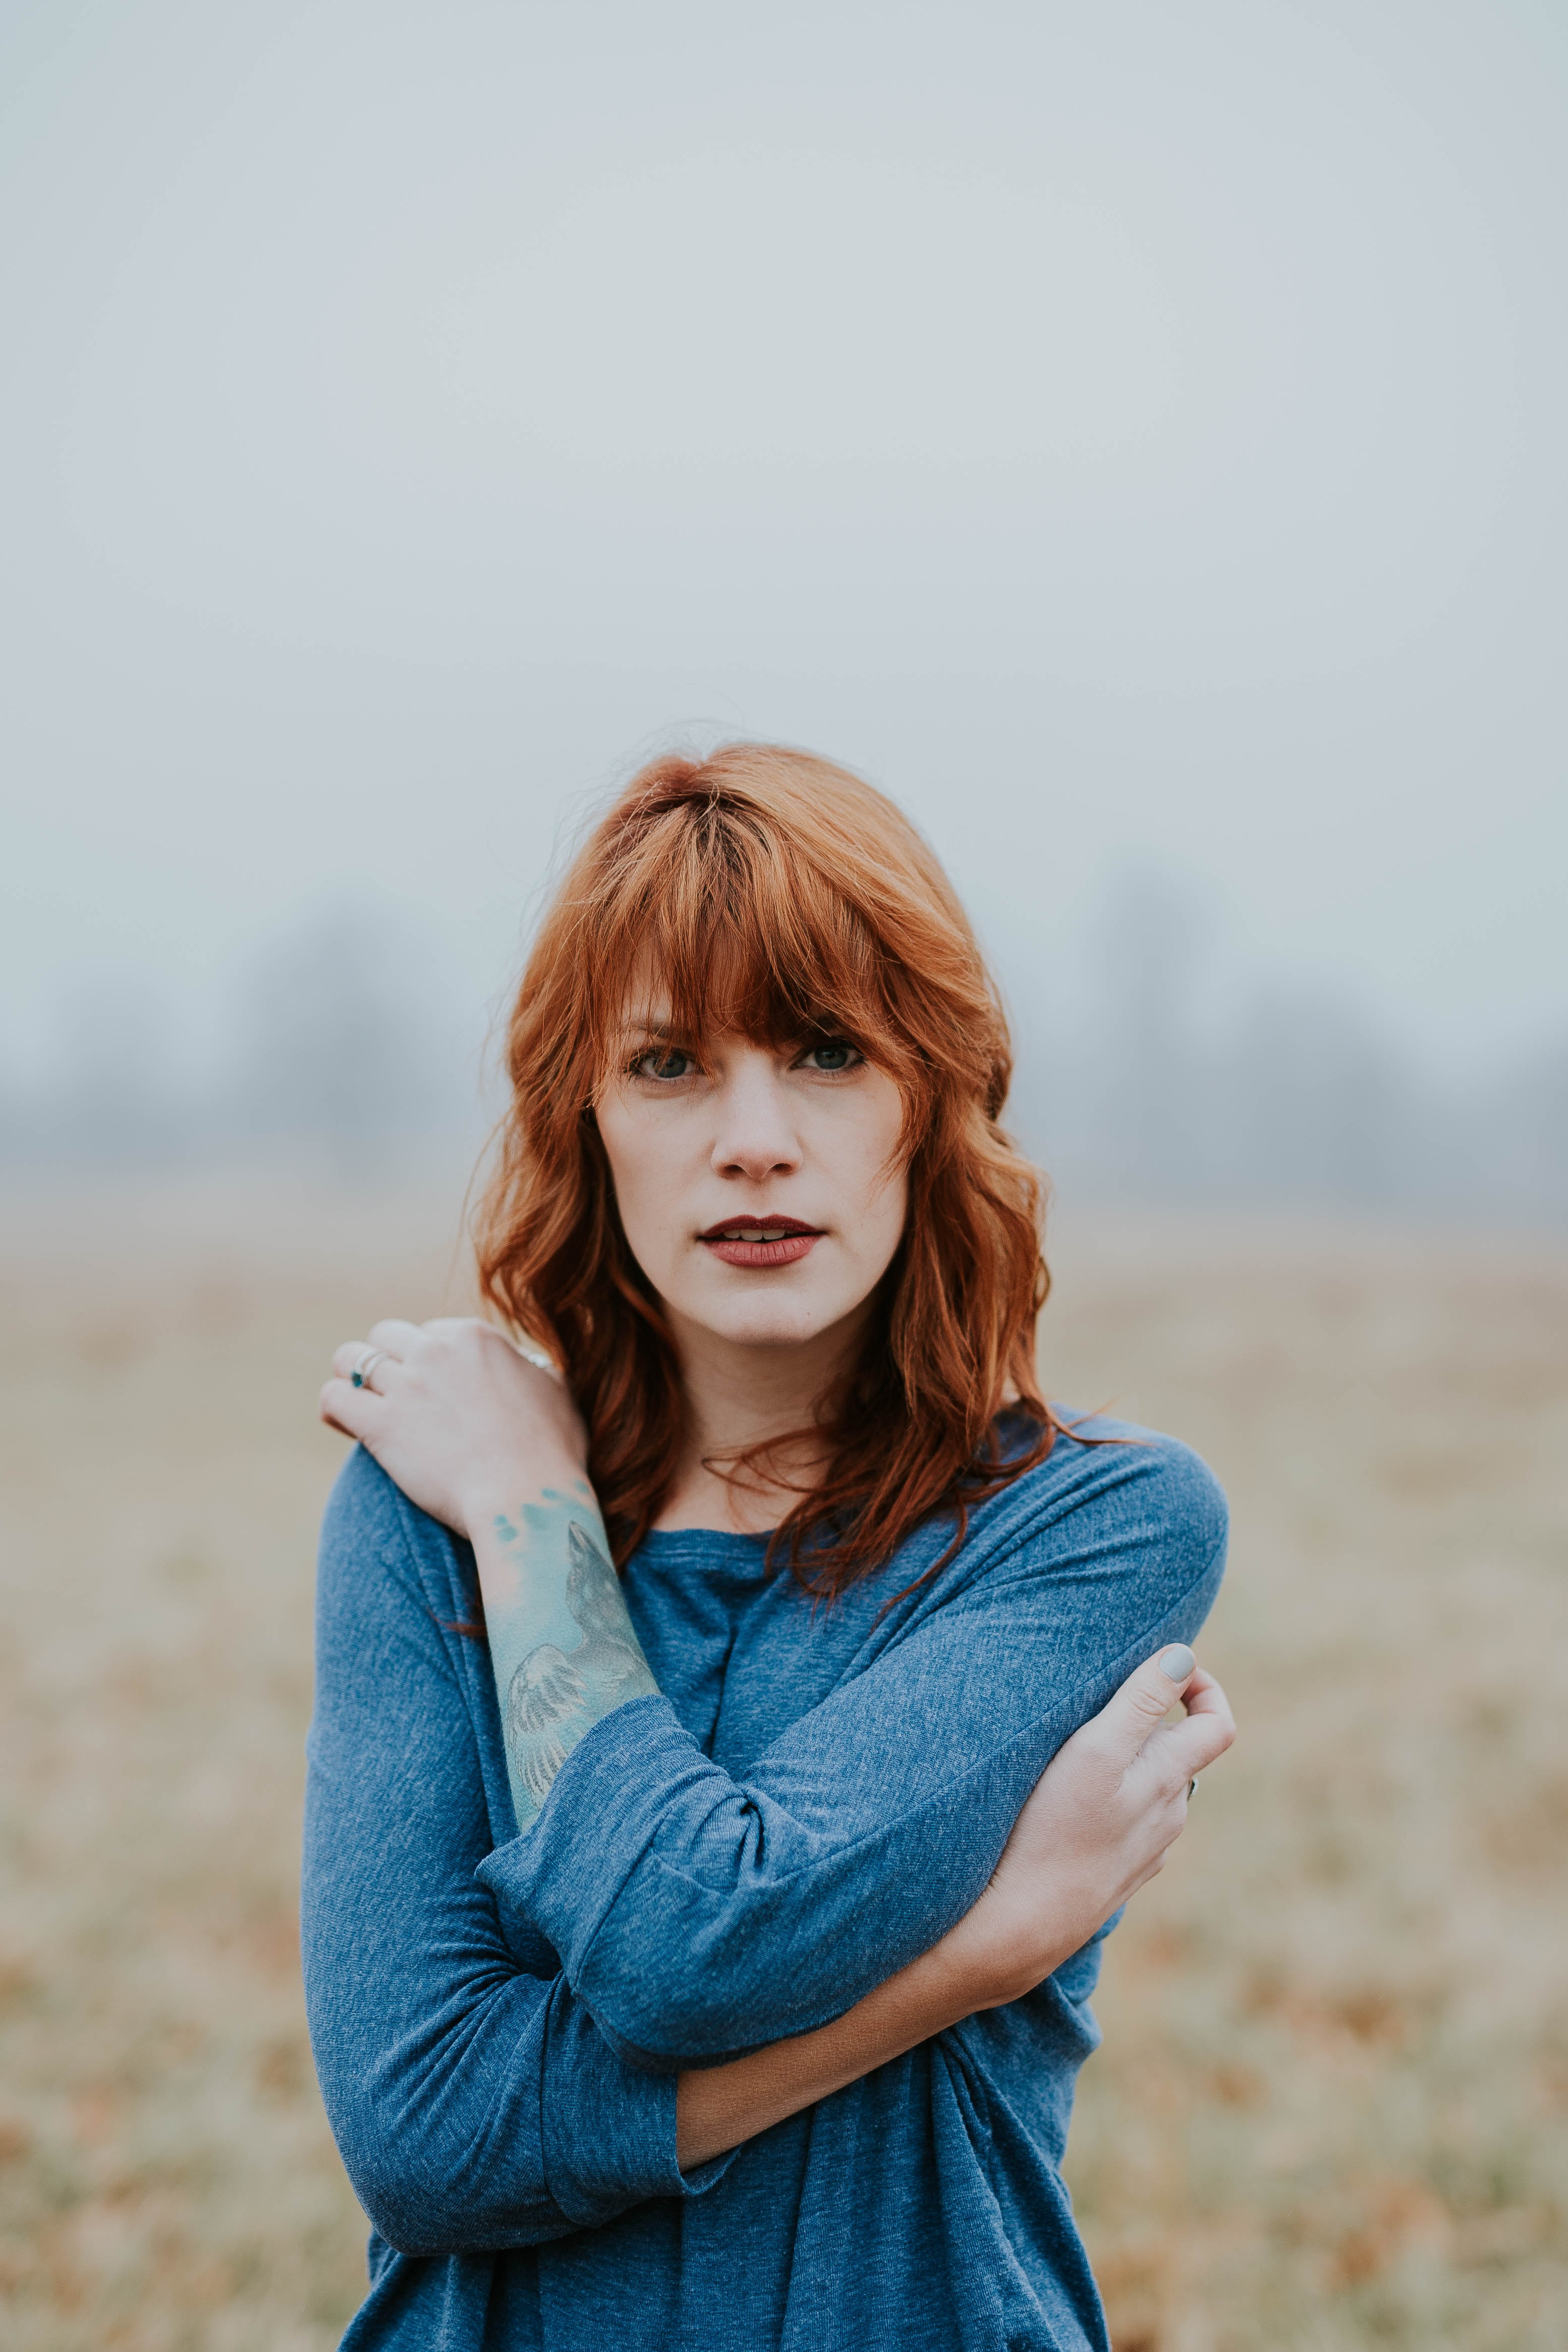 Portrait of woman looking contemplative in a field